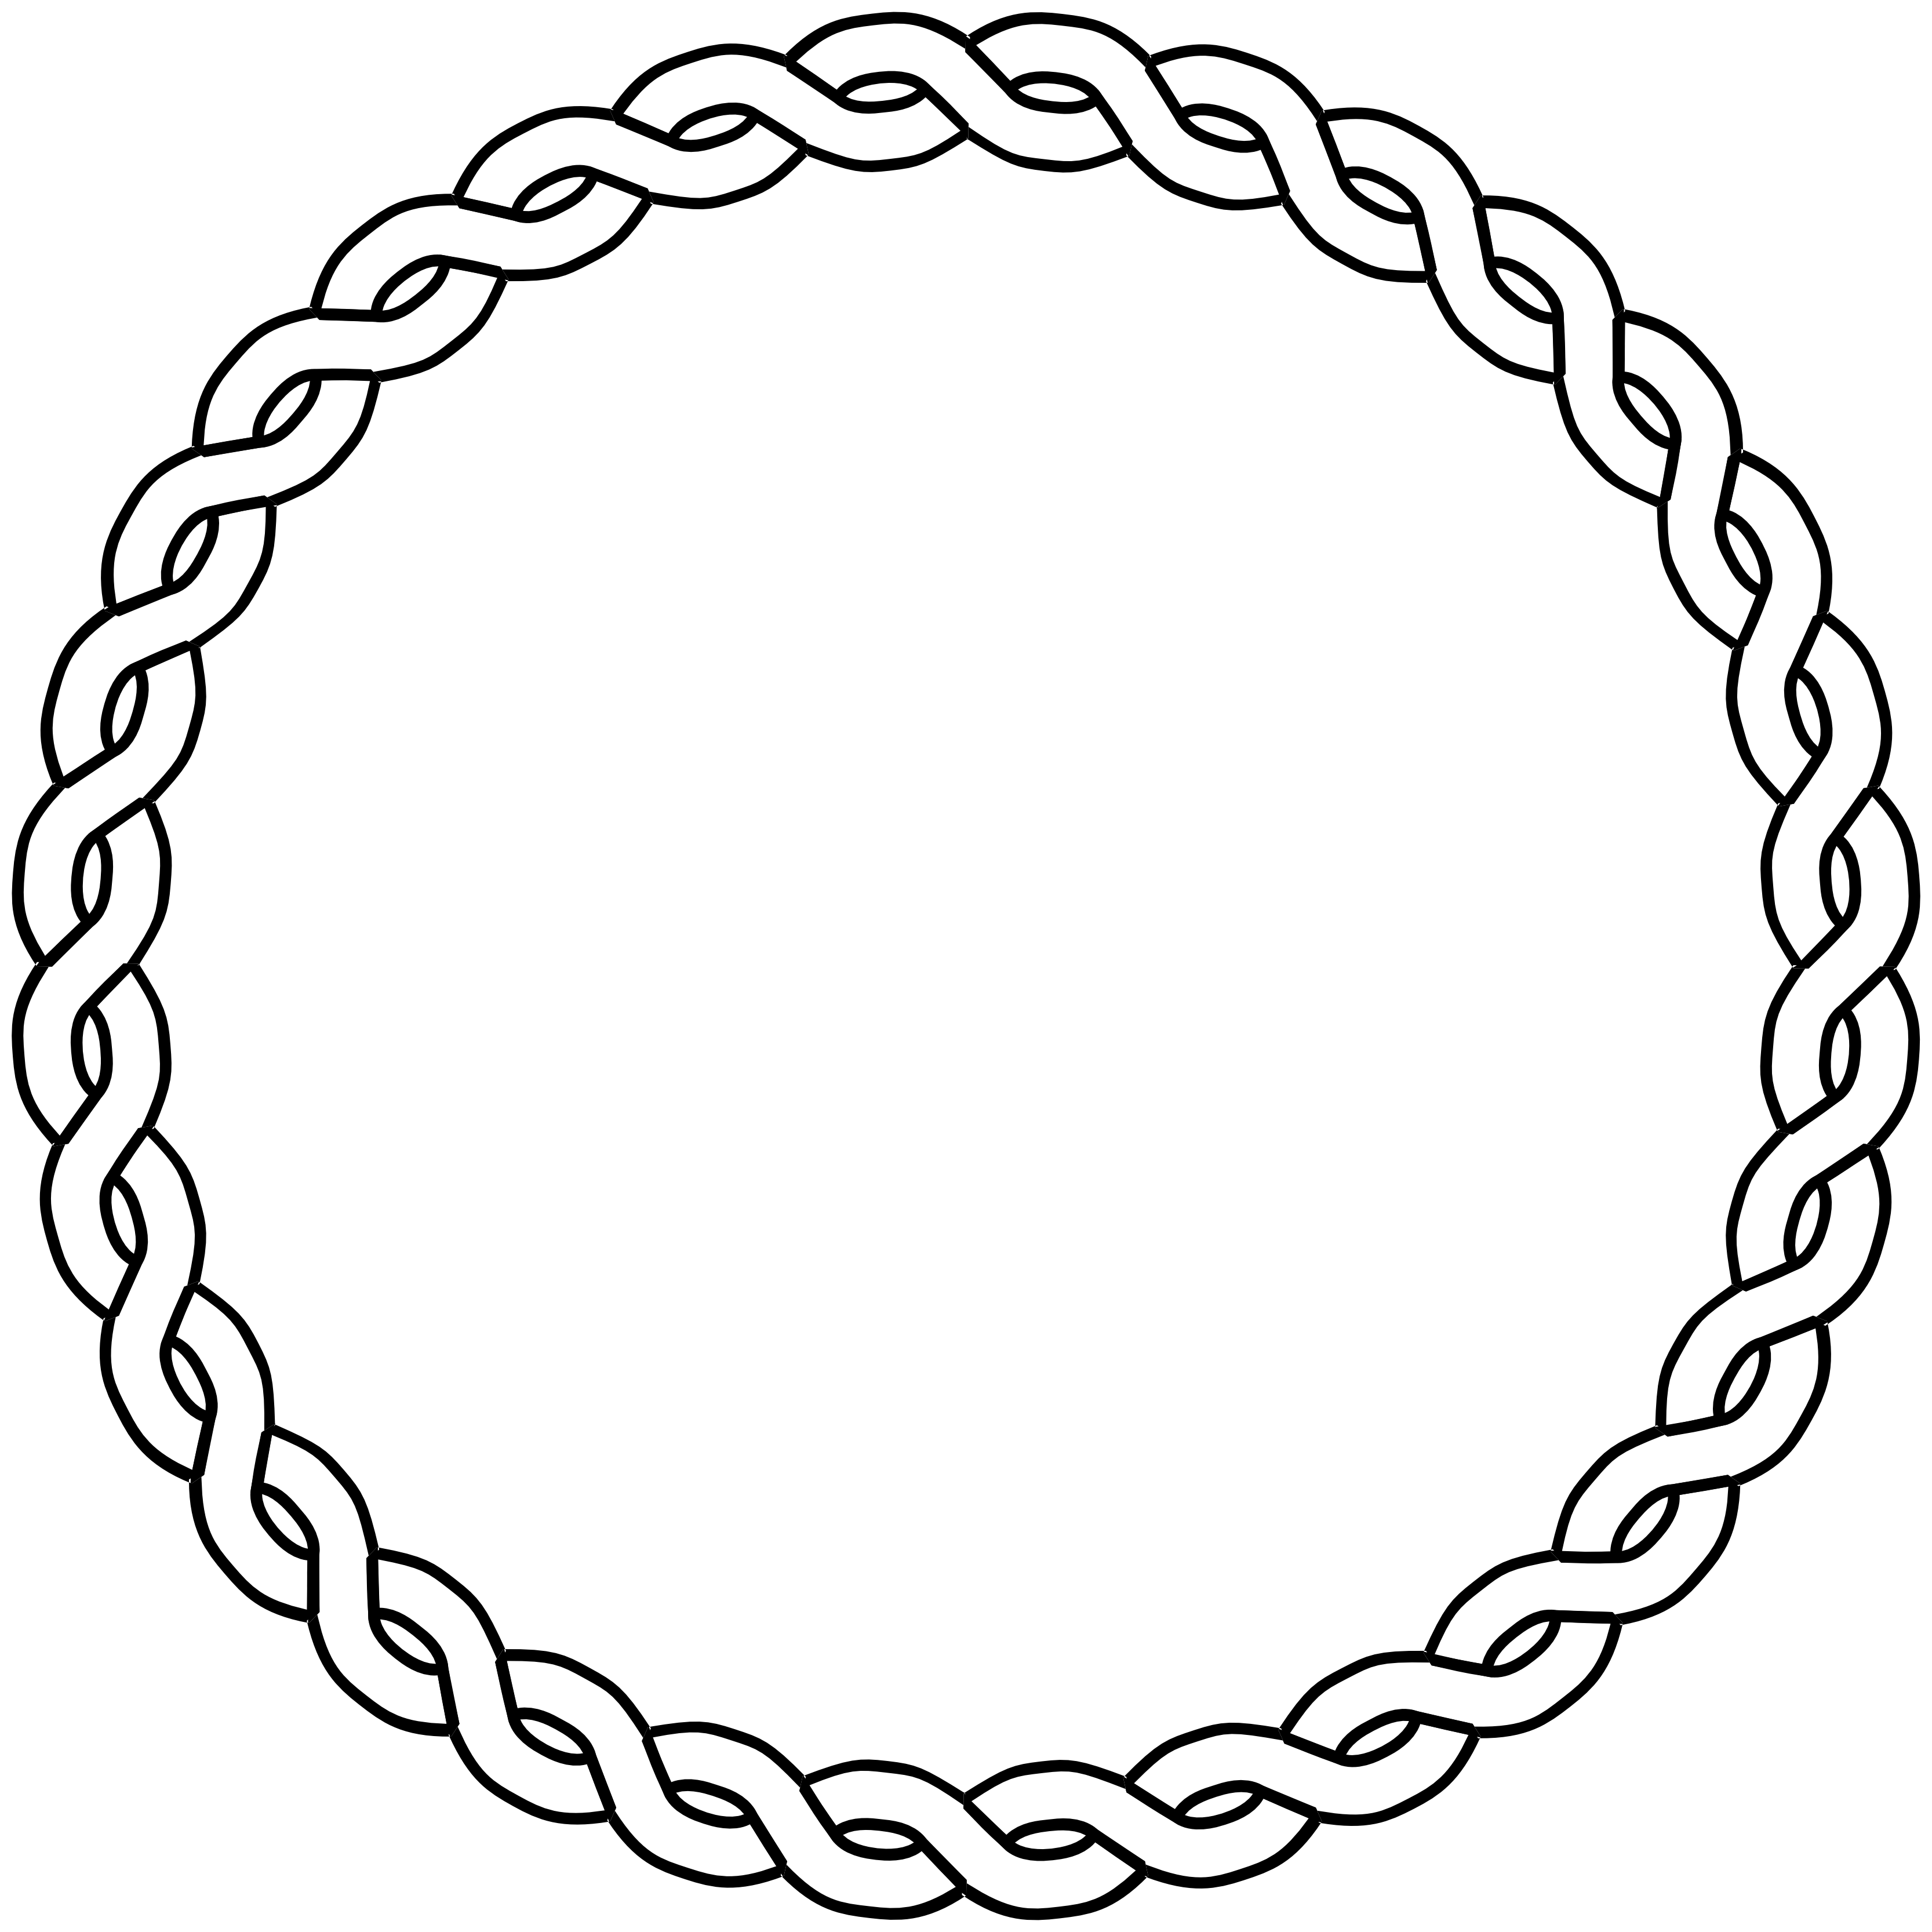 Dna tree clipart vector freeuse stock Rope Border Circle Dna Black | Clipart Panda - Free Clipart Images vector freeuse stock